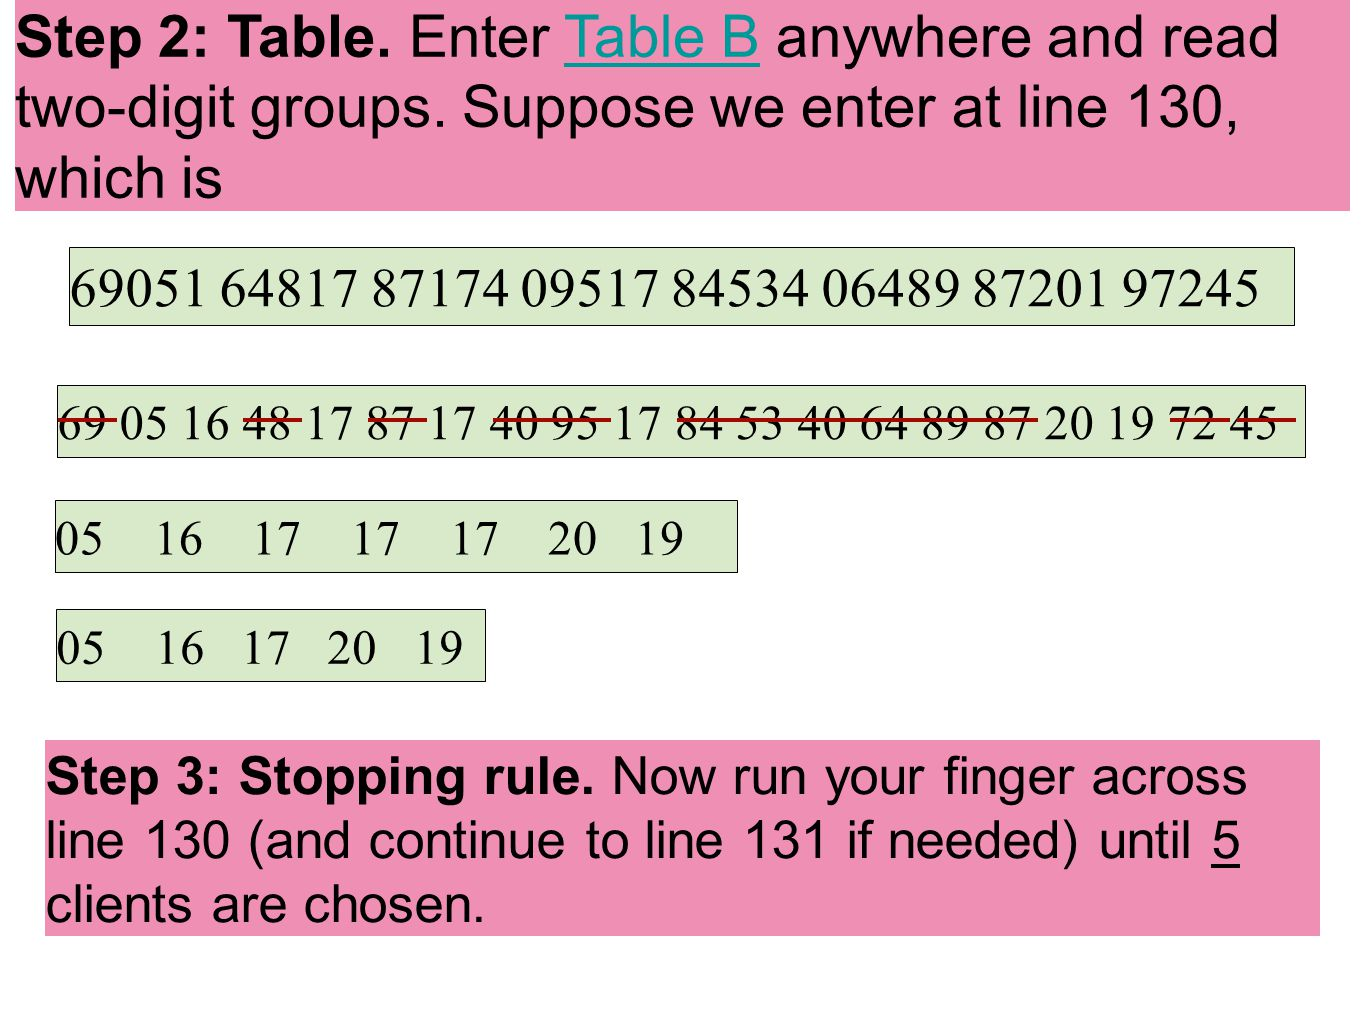 Step 2: Table. Enter Table B anywhere and read two-digit groups